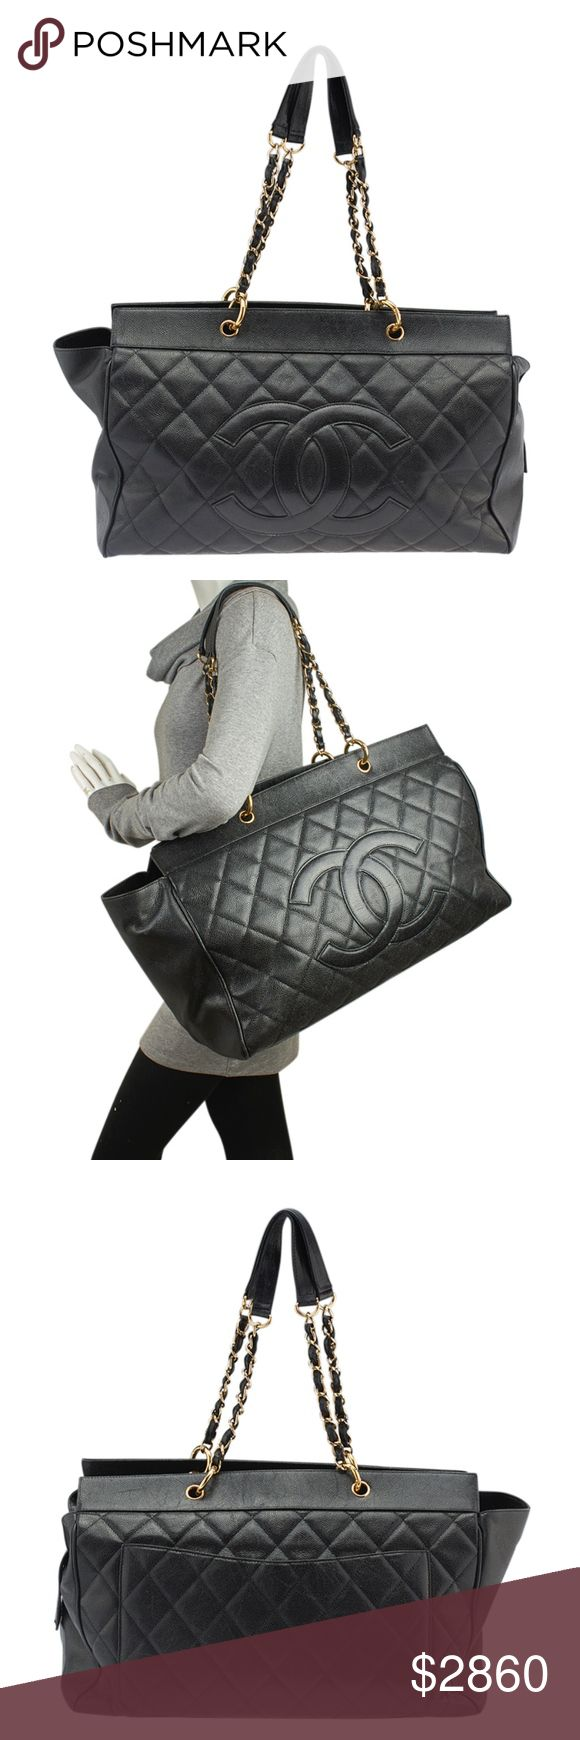 Chanel XL Grand Shopper Caviar Quilted Tote 138077 •Designer: Chanel •Interior Lining: Fabric •Interior Color: Black •Meas (L x W x H): 22x8x10 •Handle Drop: 10 •Interior Pockets: 2 •Overall Condition Description: -Exterior corners show scuffing and are torn exposing the inner piping -Exterior leather shows scuffing and wear throughout -Exterior shows creasing -Leather around the top opening shows scratches and scuffing -Interior shows scuffing and light staining -Hardware shows scratches…